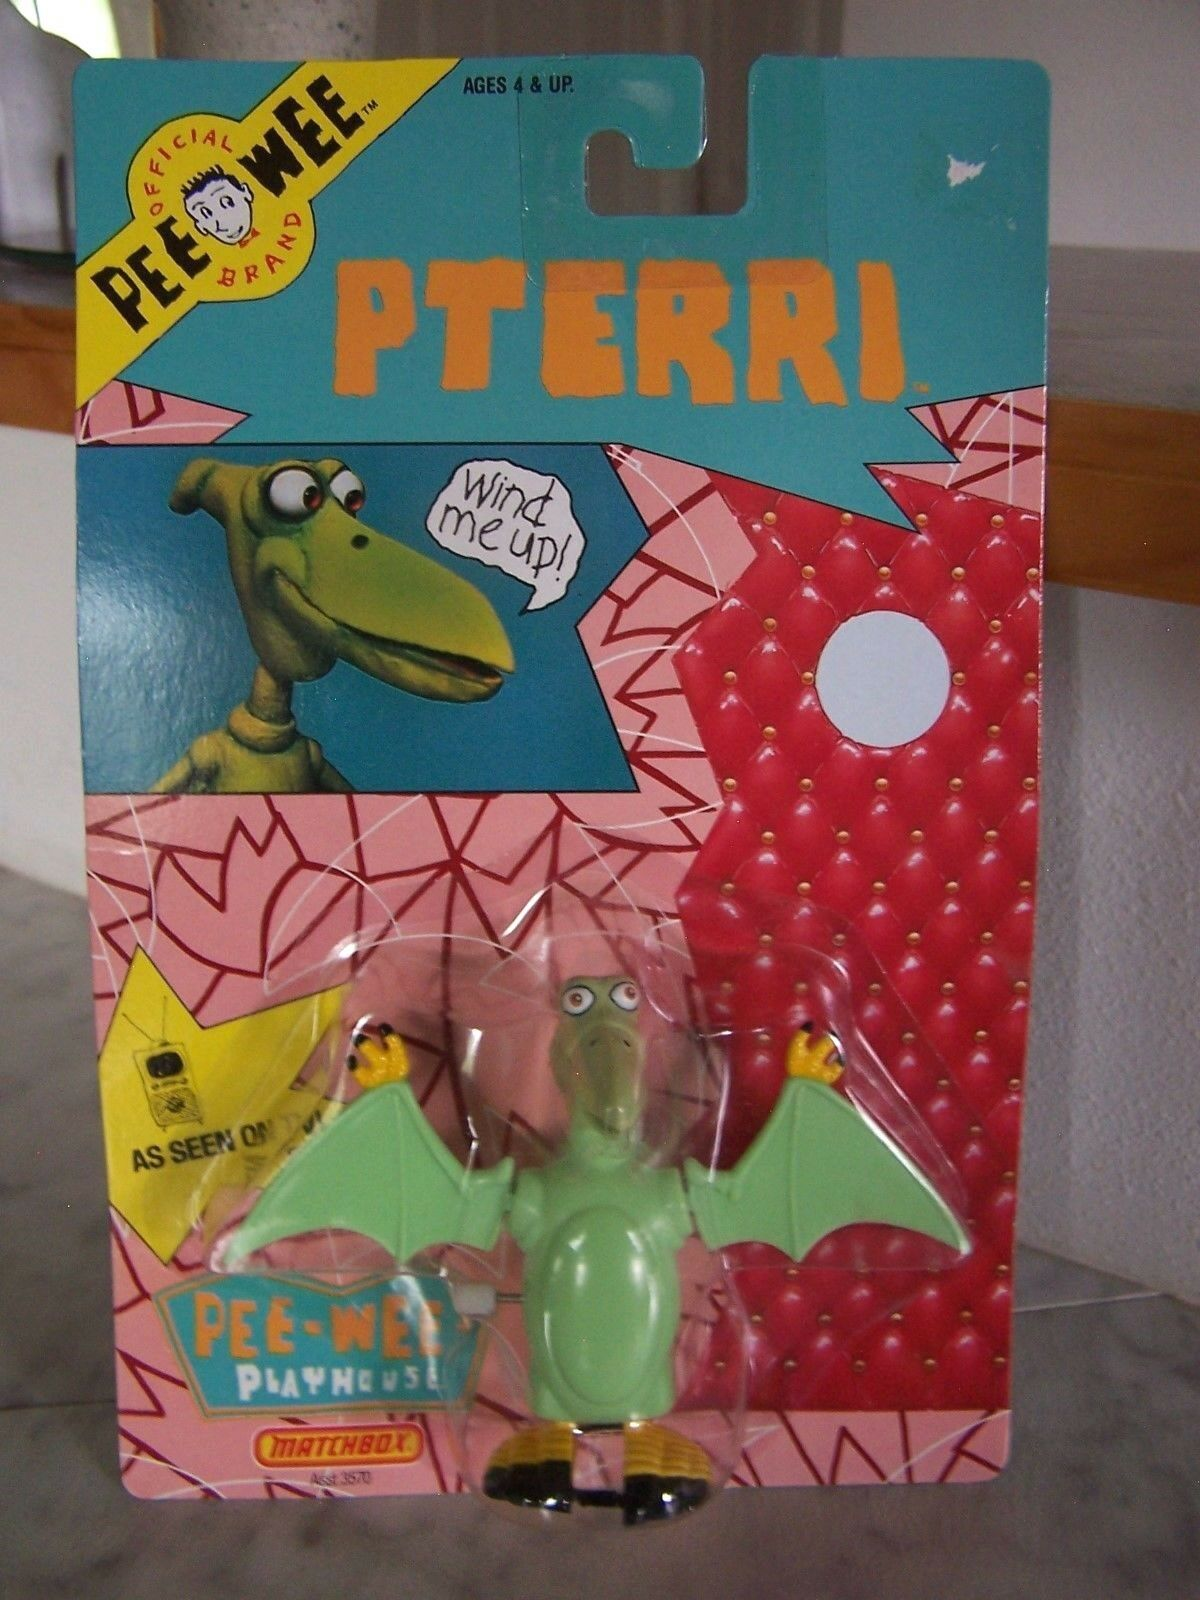 1988 PEE-WEE Playhouse Vintage Matchbox PTERRI Wind Up toy action Figure (NEW)